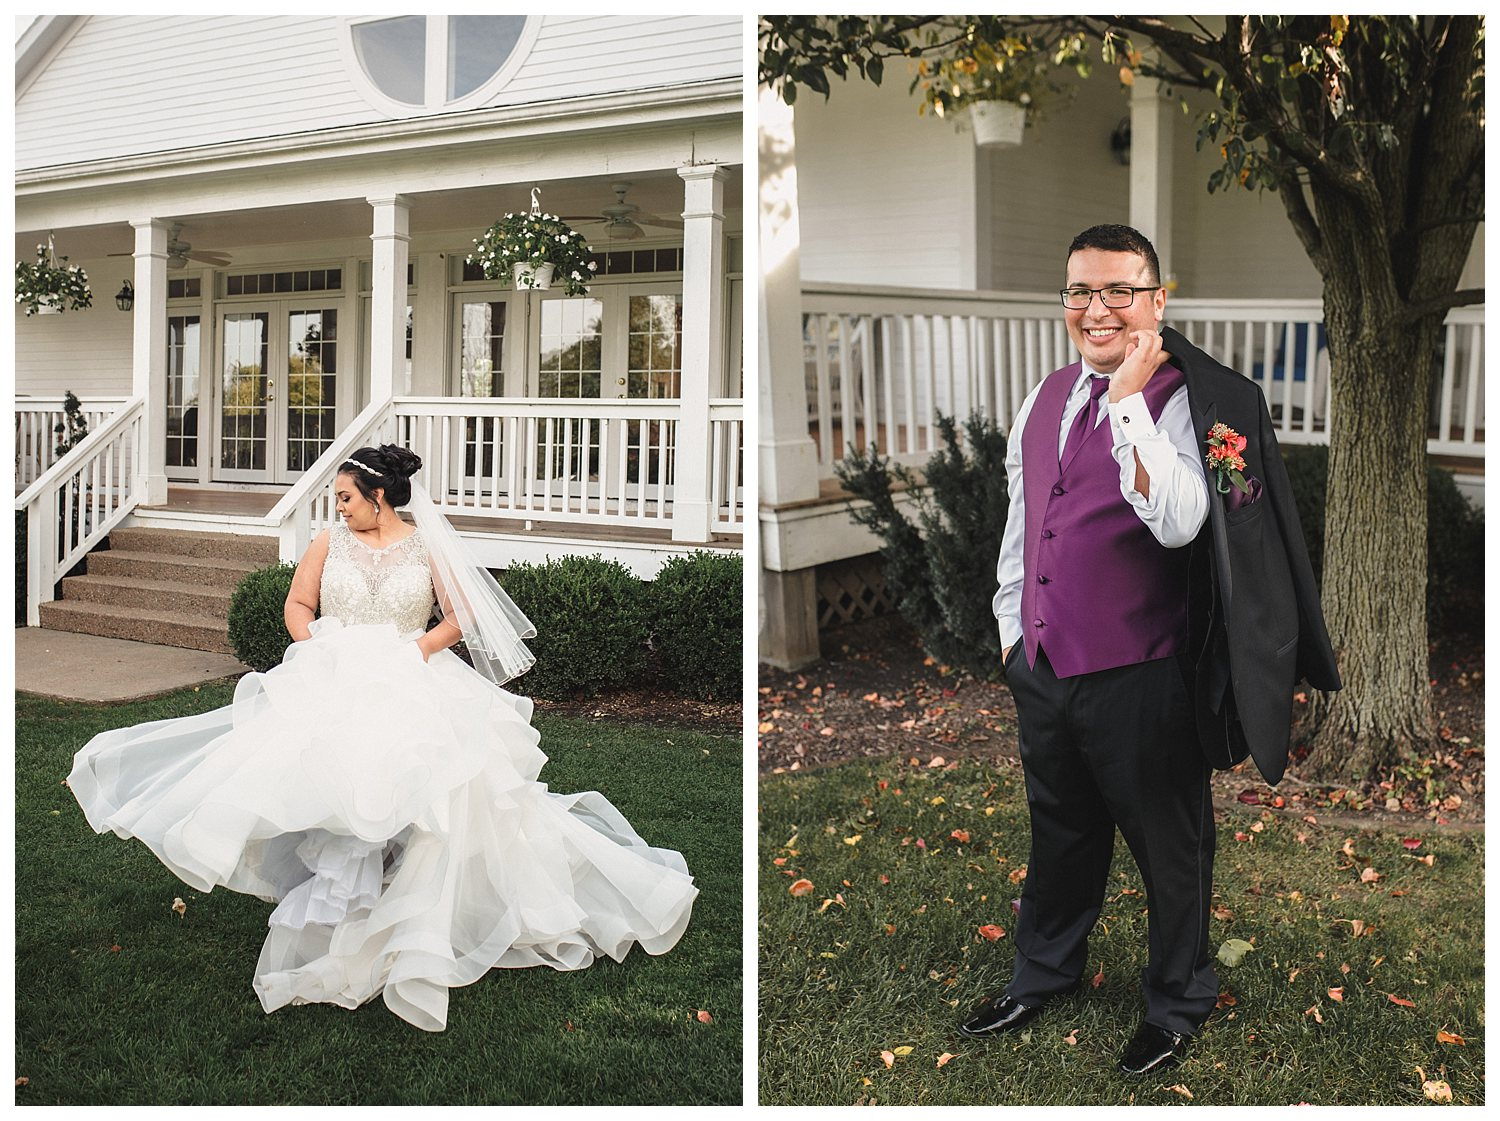 Kelsey_Diane_Photography_Hawthorne_House_Parkville_Kansas_City_Wedding_Veronica_Pat_0028.jpg